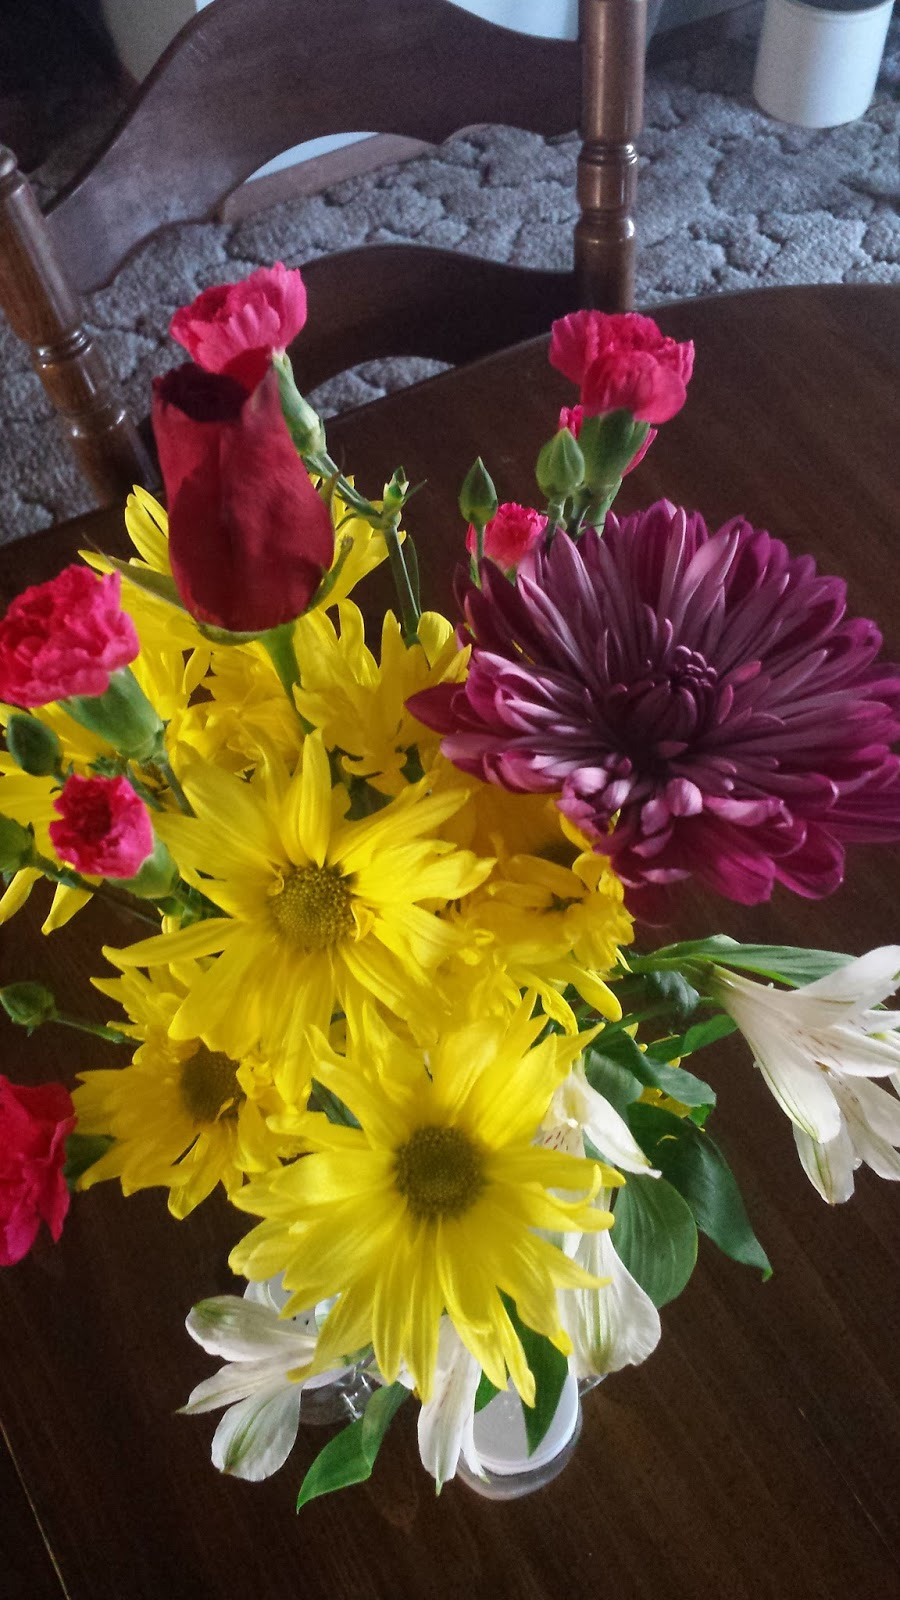 Srkindredspirits 10 ways to keep your home and soul refreshed aldi and many other stores have cheap flowers take them home cut the ends arrange them and you have fresh flowers it is very worthwhile izmirmasajfo